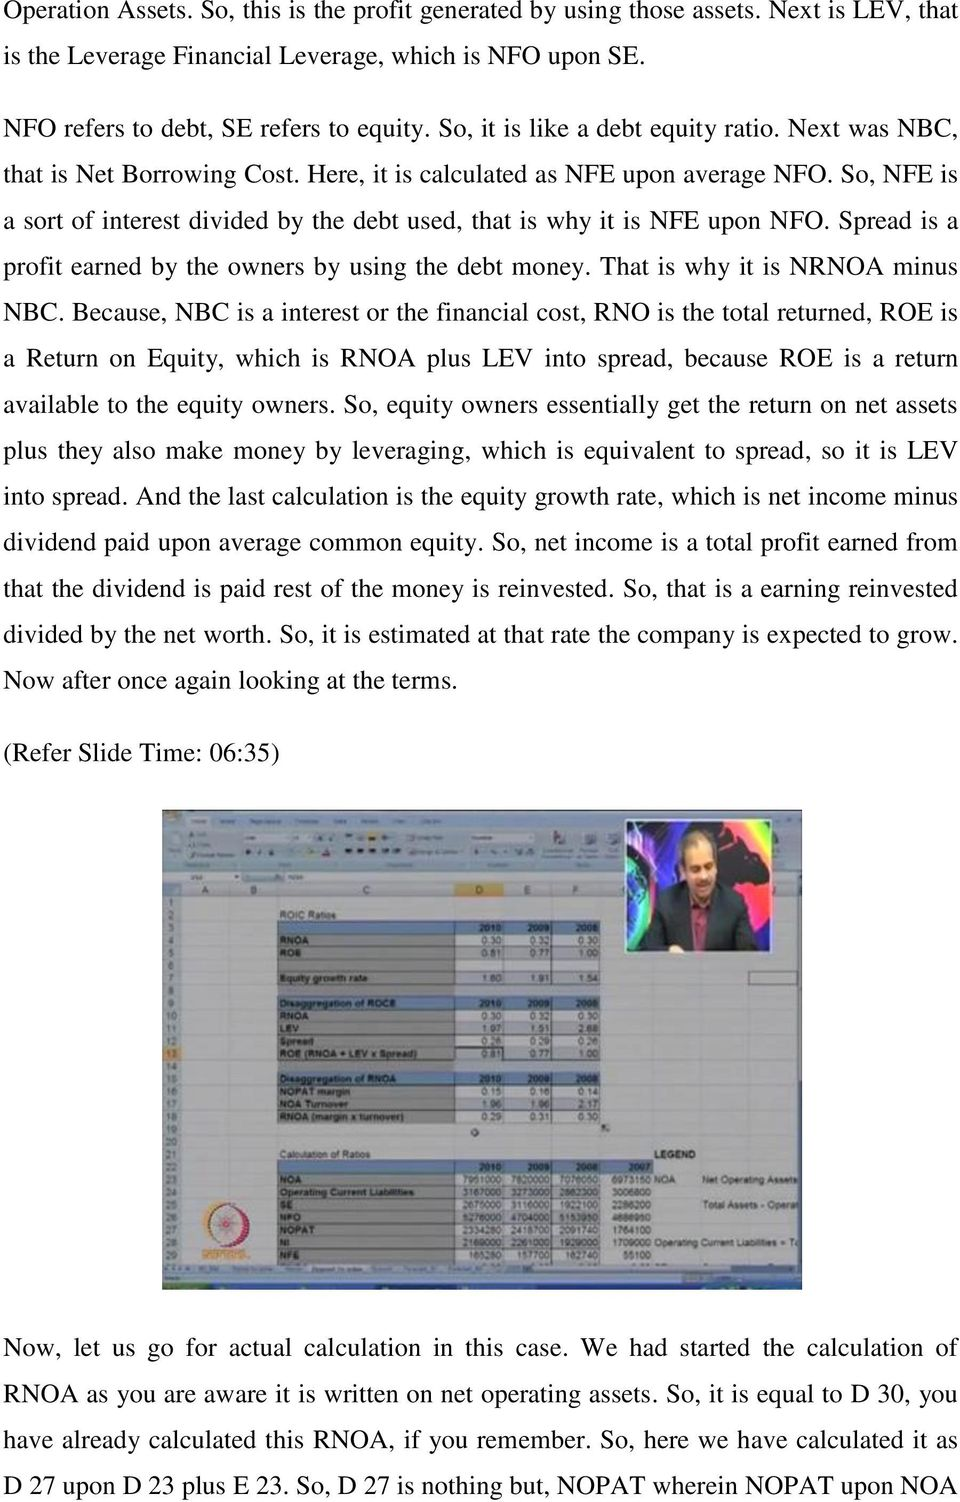 So, NFE is a sort of interest divided by the debt used, that is why it is NFE upon NFO. Spread is a profit earned by the owners by using the debt money. That is why it is NRNOA minus NBC.